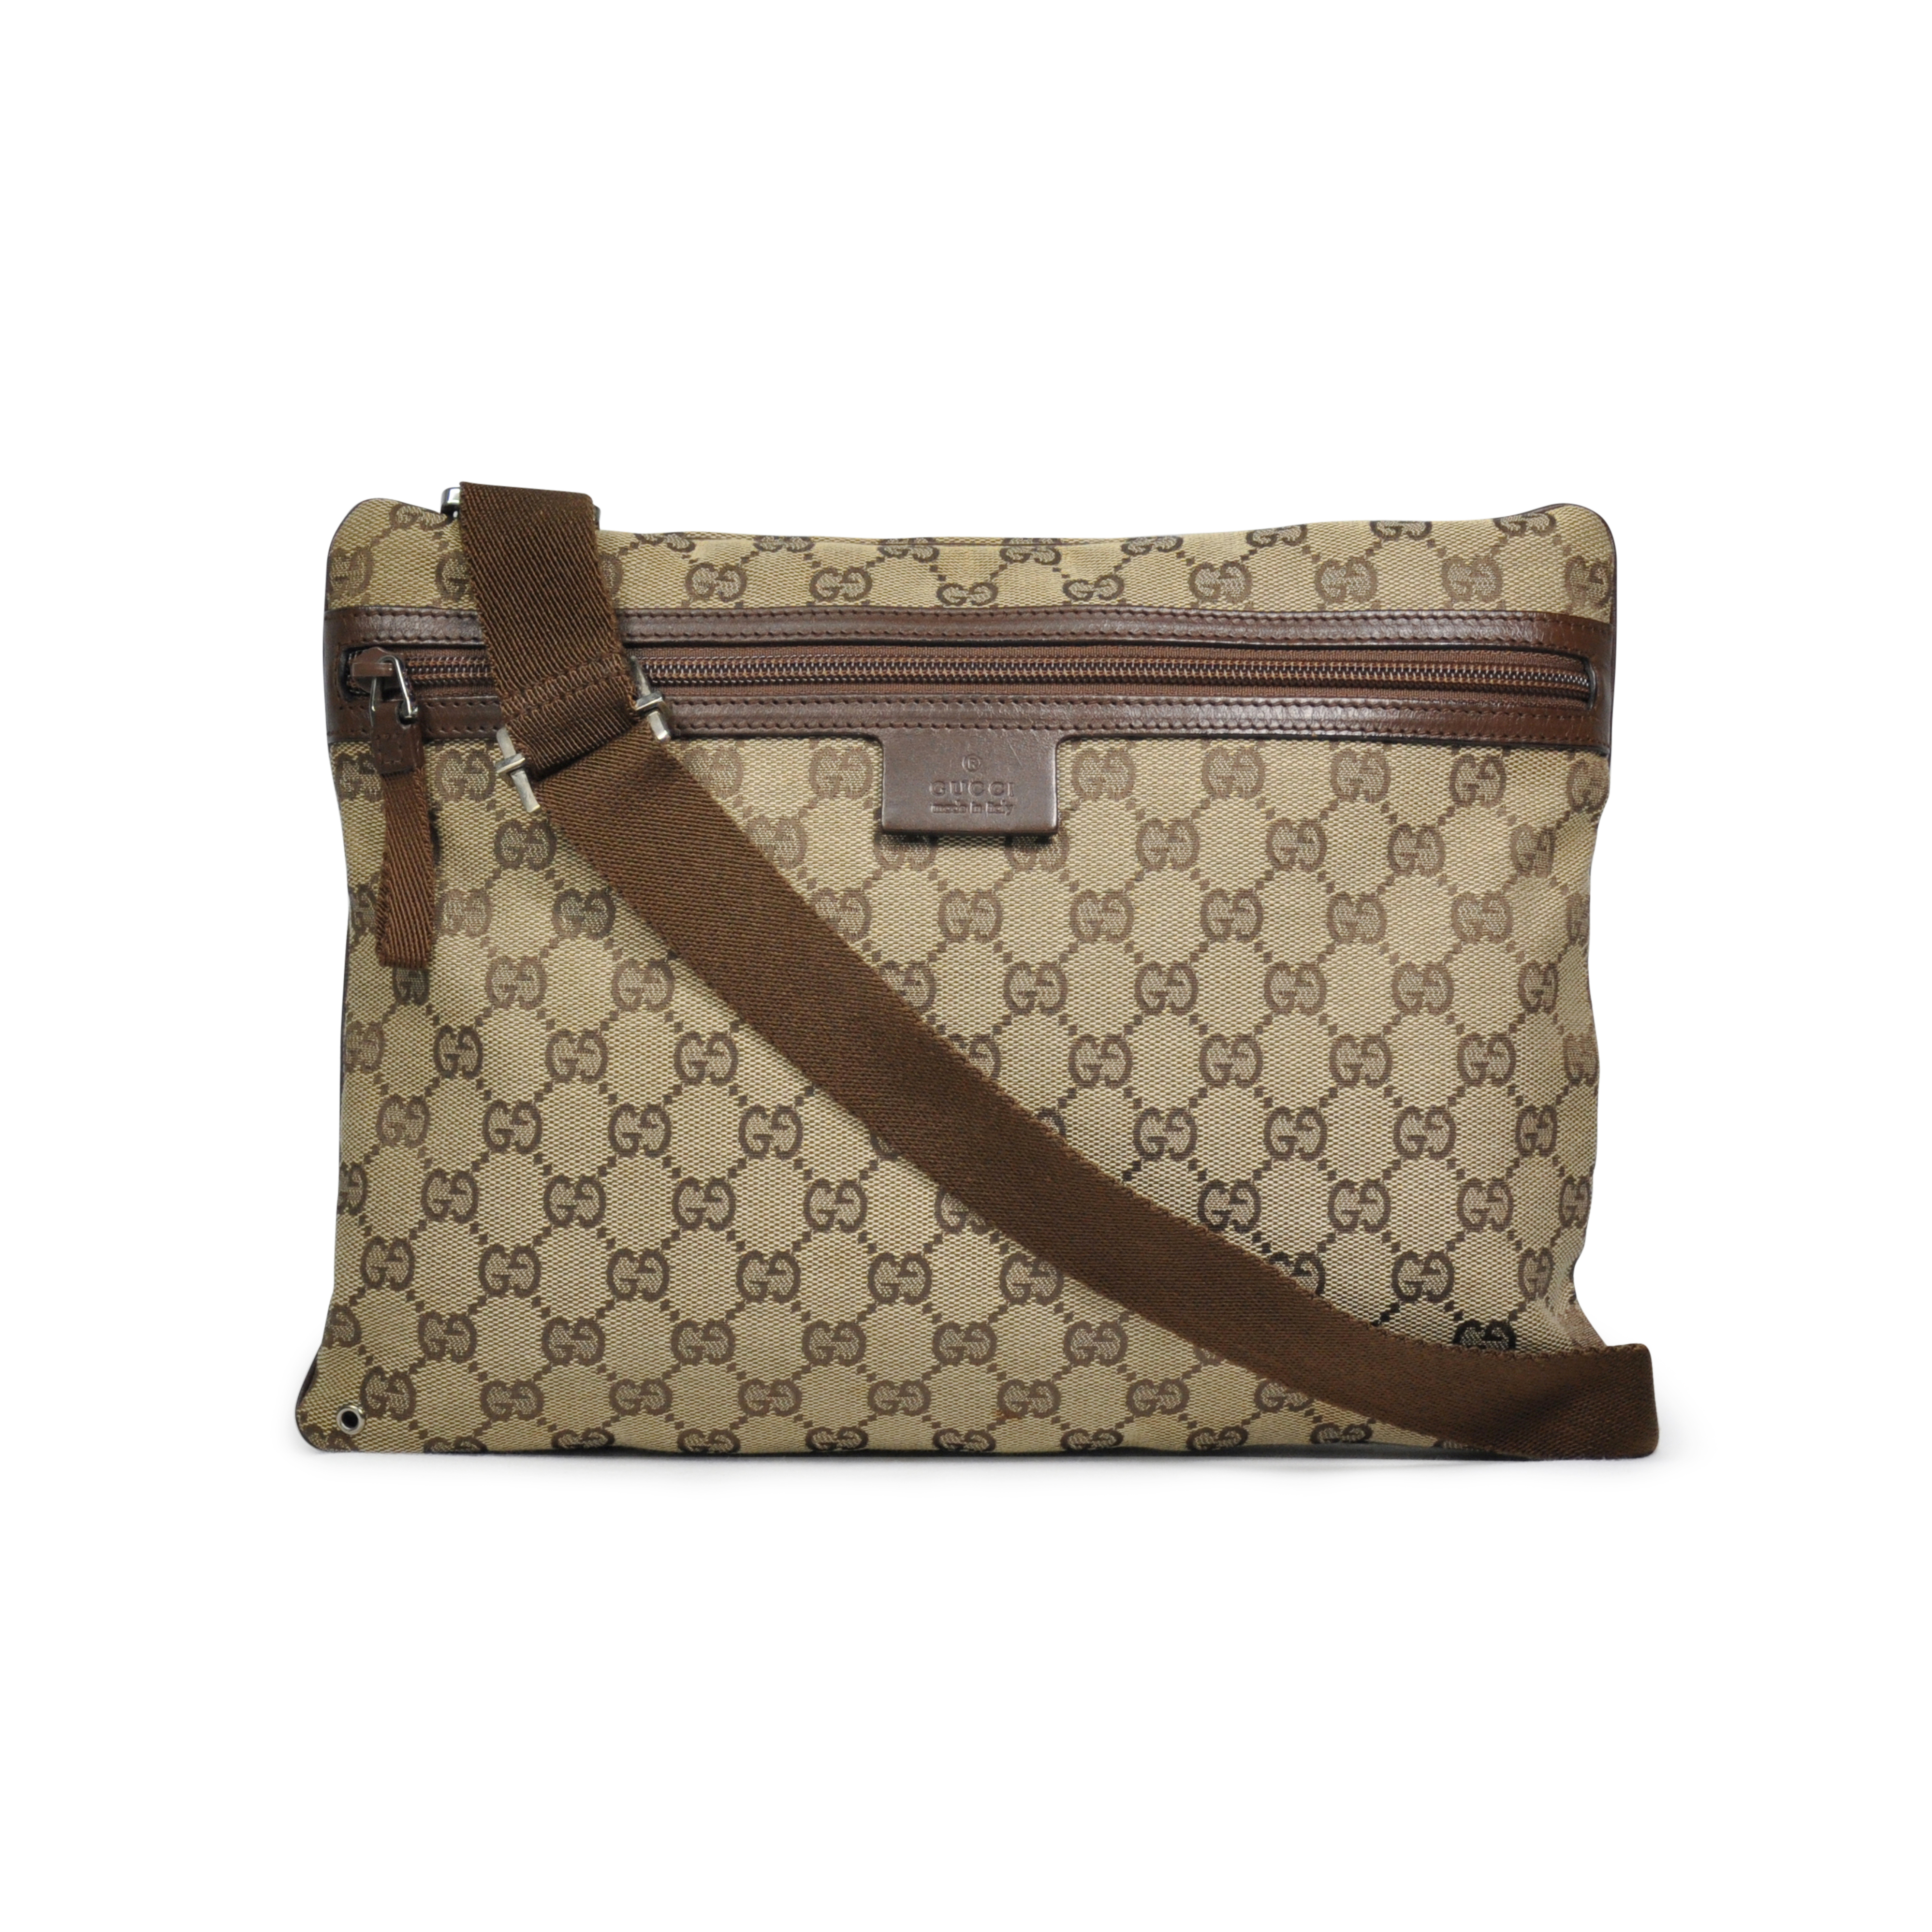 7f78eca6f Authentic Second Hand Gucci Monogram Crossbody Bag (PSS-283-00004) - THE  FIFTH COLLECTION